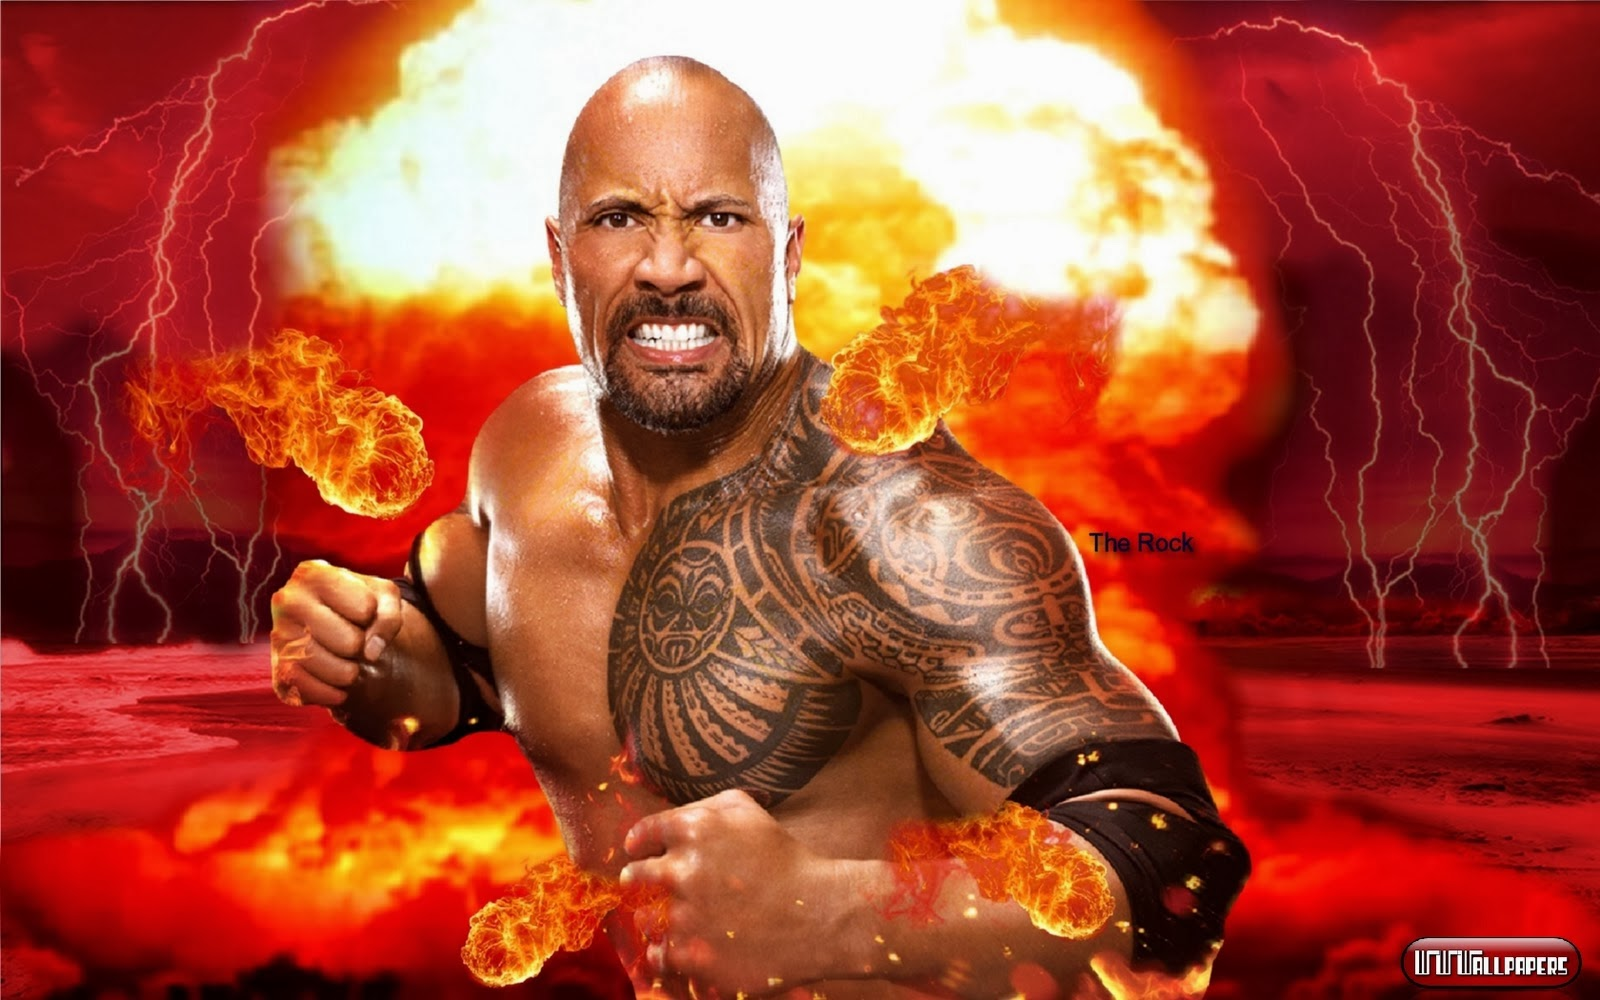 the rock wallpapers | beautiful the rock picture | superstar the